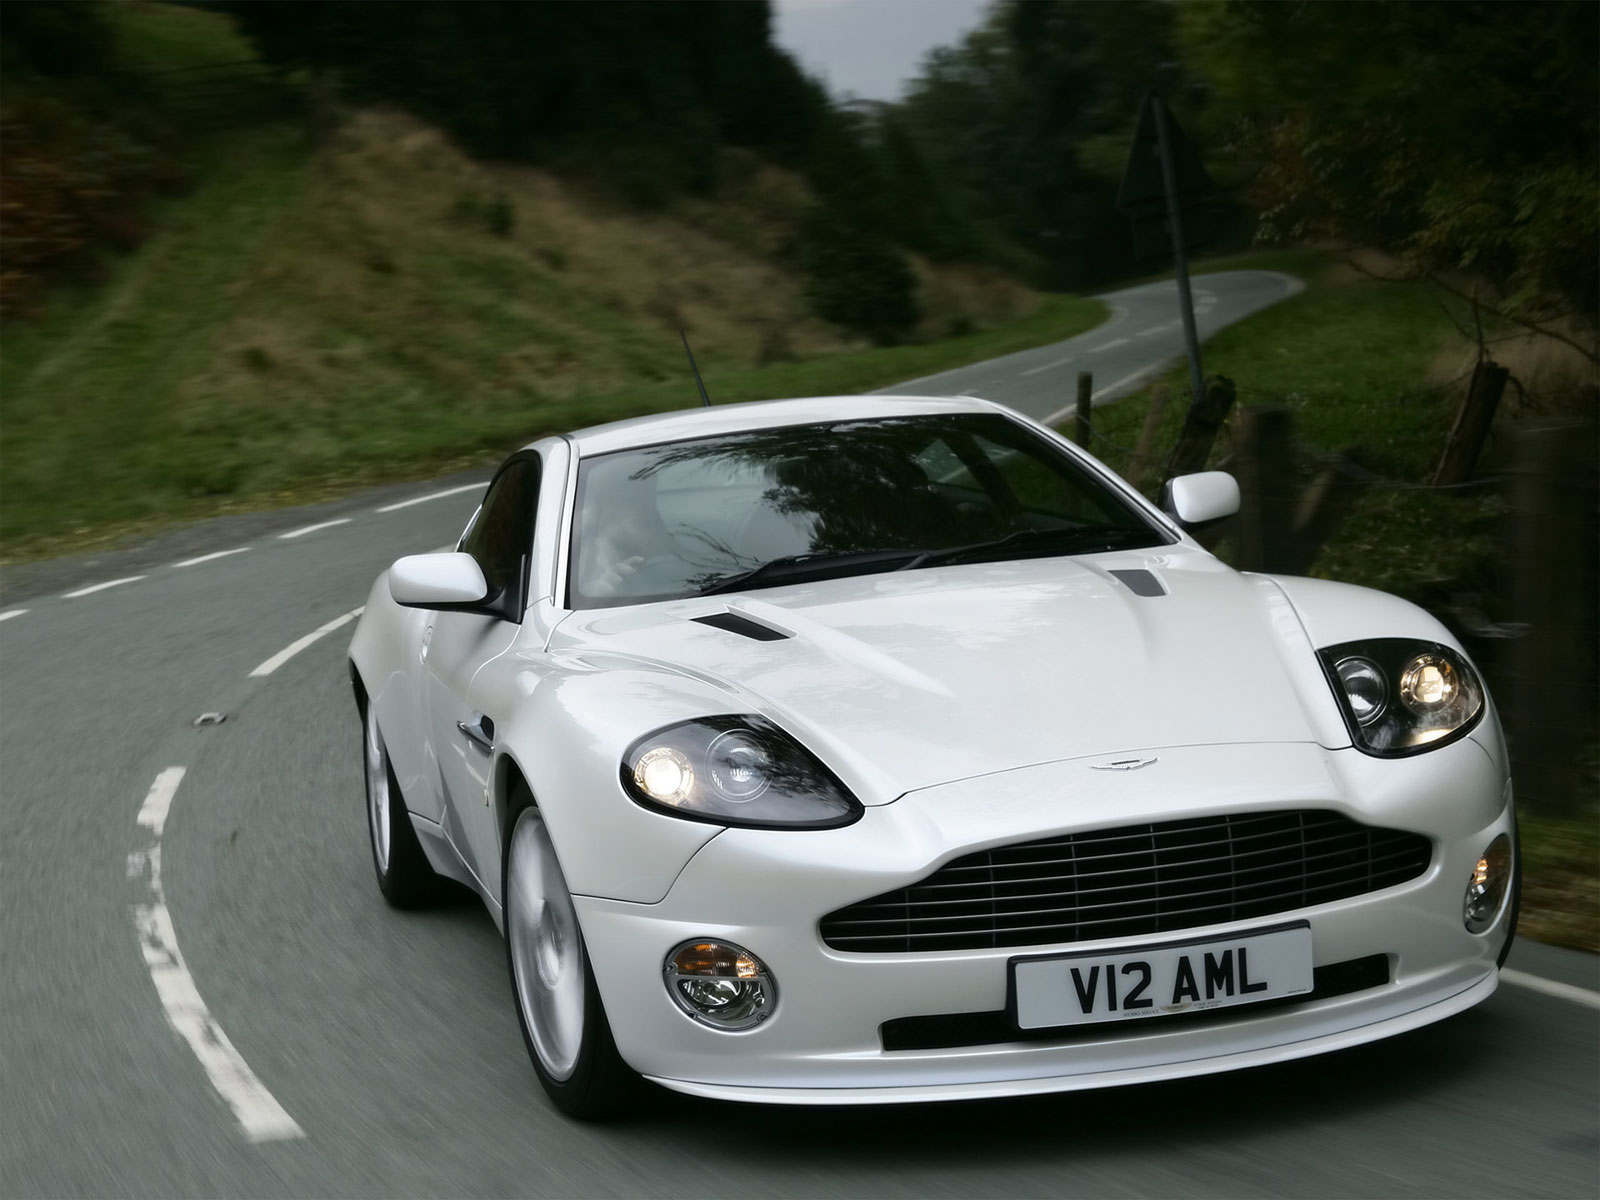 edward cullen s aston martin vanquish. Black Bedroom Furniture Sets. Home Design Ideas